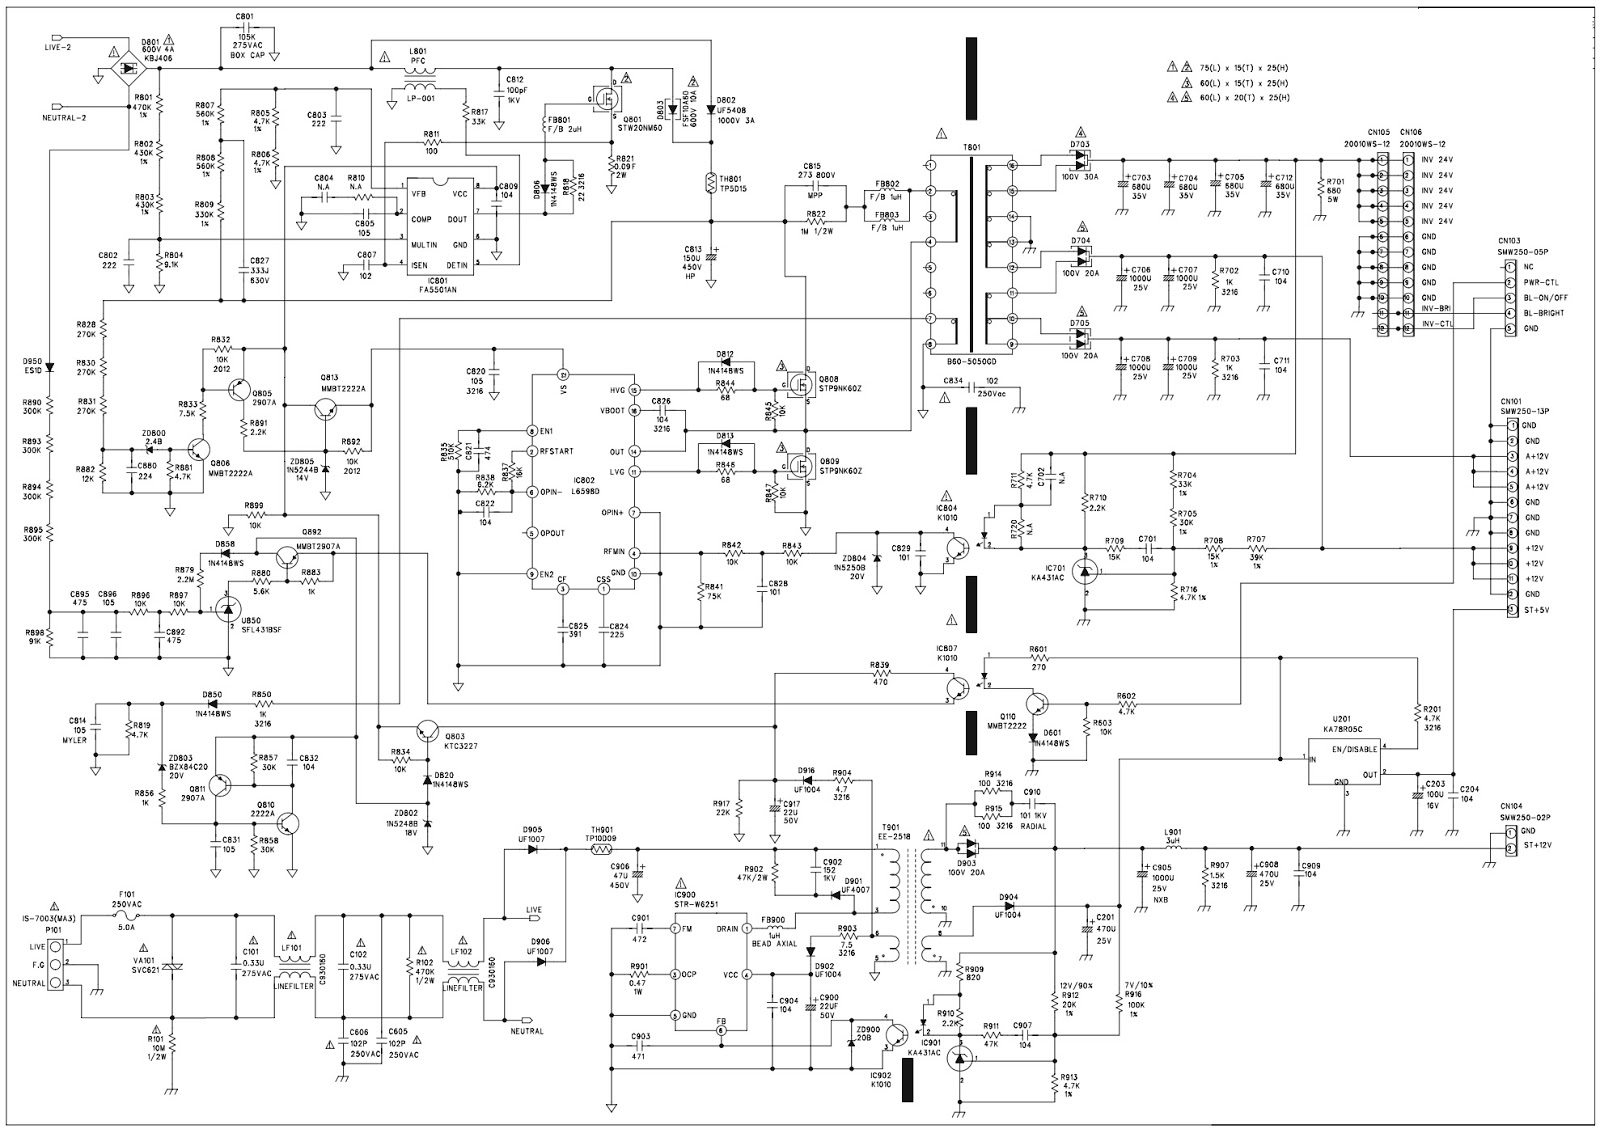 smps circuit diagram the wiring diagram computer smps circuit diagram vidim wiring diagram circuit diagram · philips led lcd tv